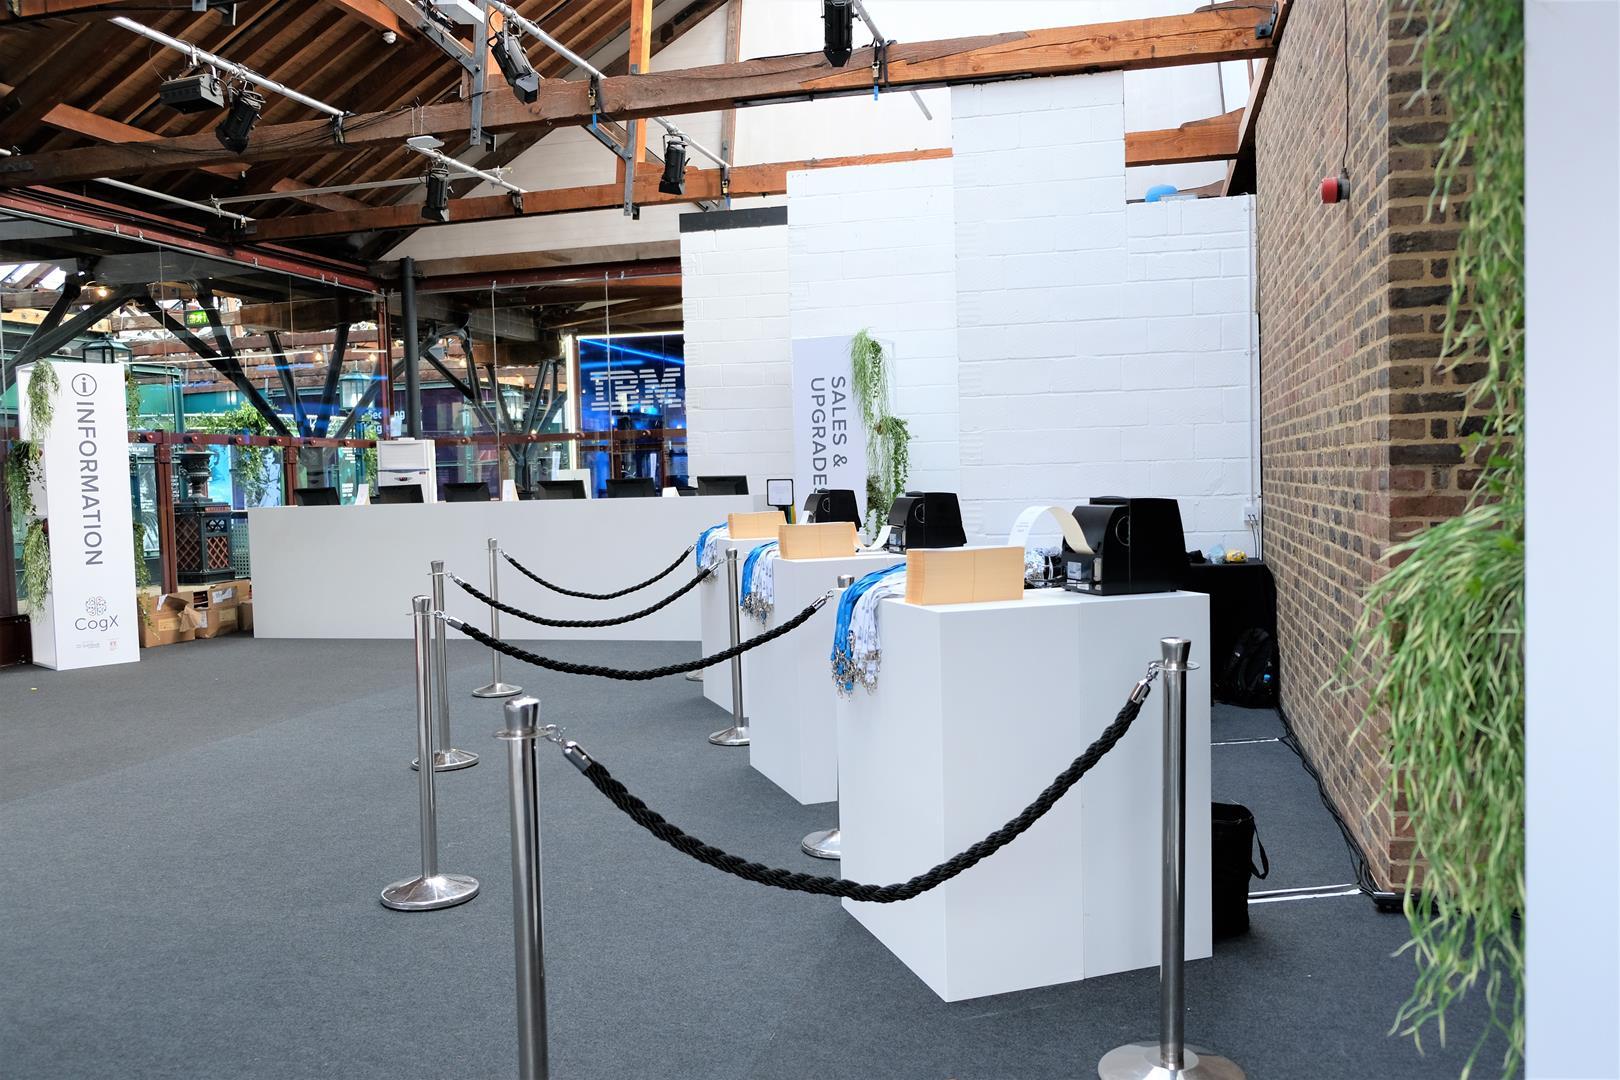 event-connections-cogx-registration.JPG